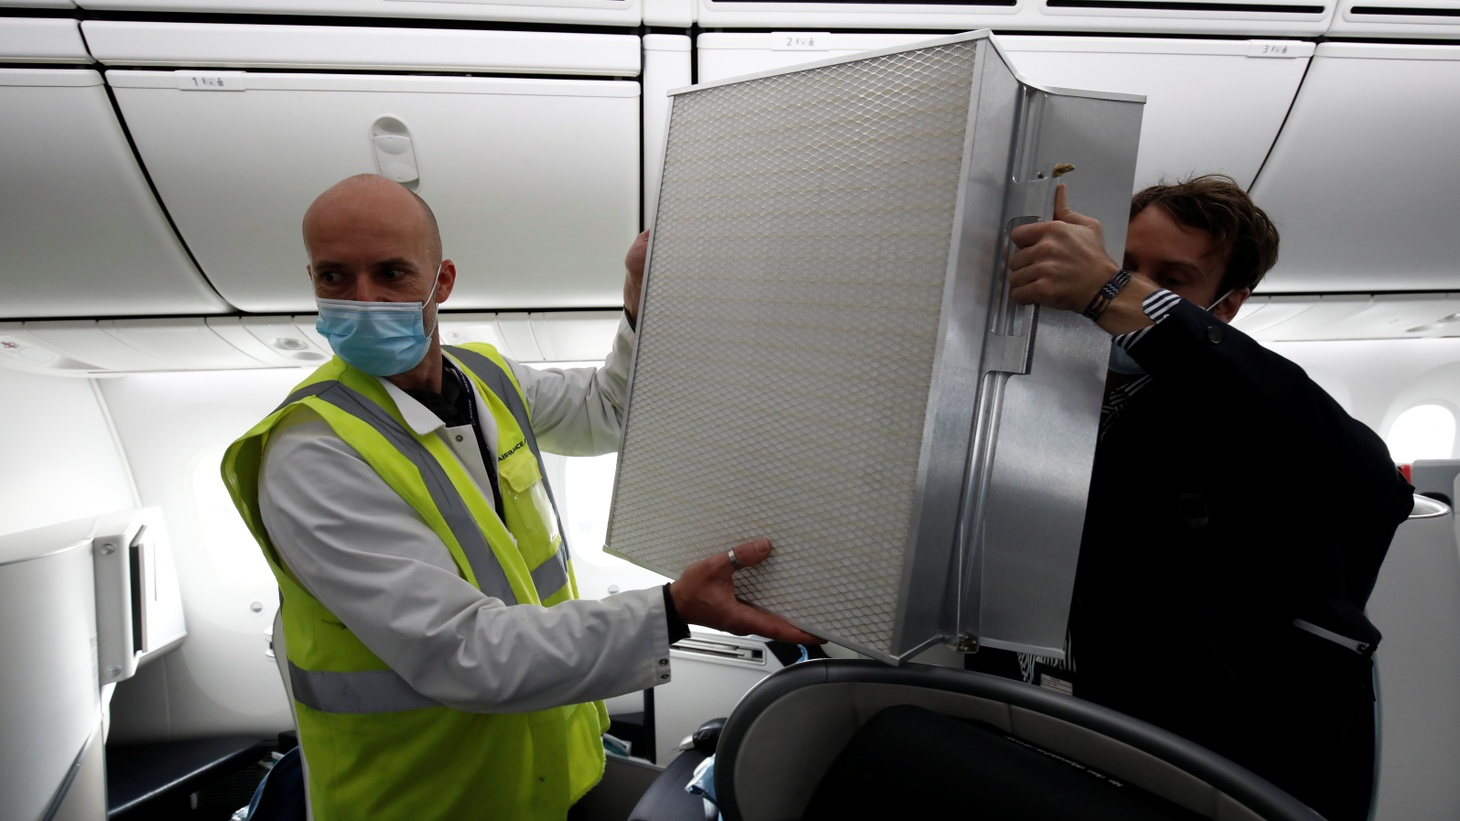 An employee wearing a protective face mask displays a Donaldson air filter in an Air France Boeing 787 aircraft during a presentation of new security and health measures at Paris Charles de Gaulle airport in Roissy-en-France during the outbreak of the coronavirus disease (COVID-19) in France, May 6, 2020.